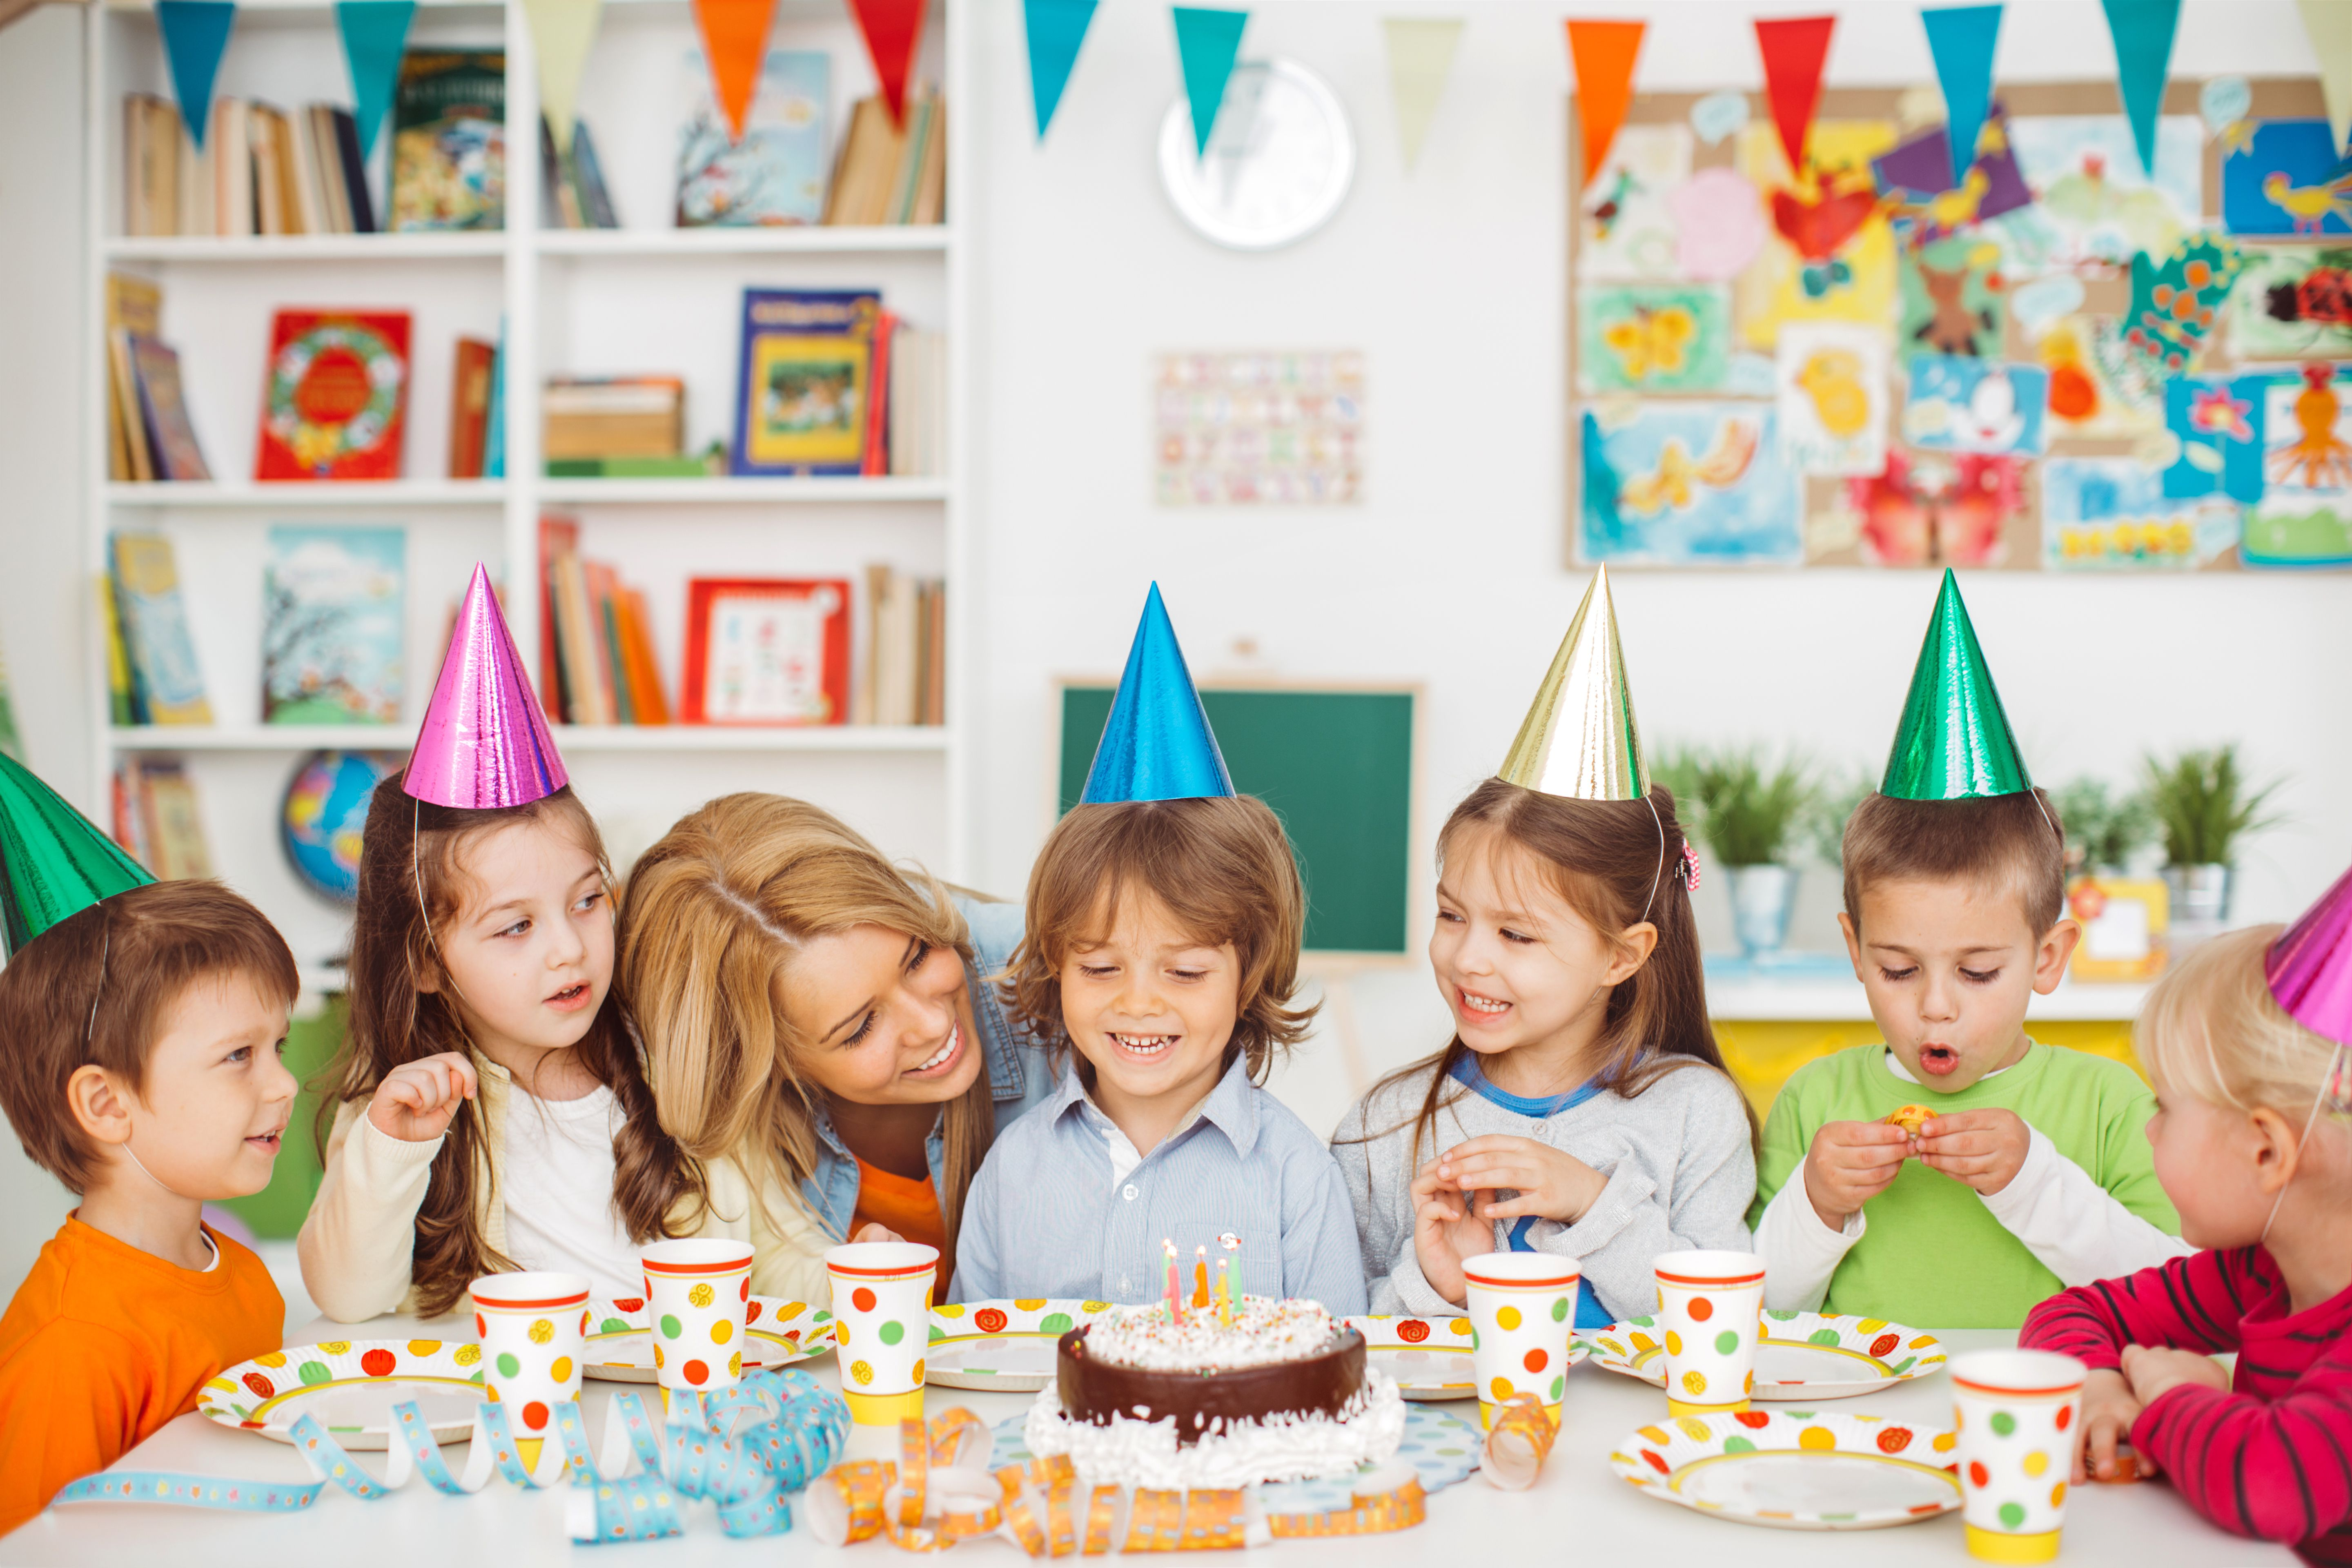 Birthday Party Games That Wont Cost You A Dime - Indoor games for birthday parties age 6